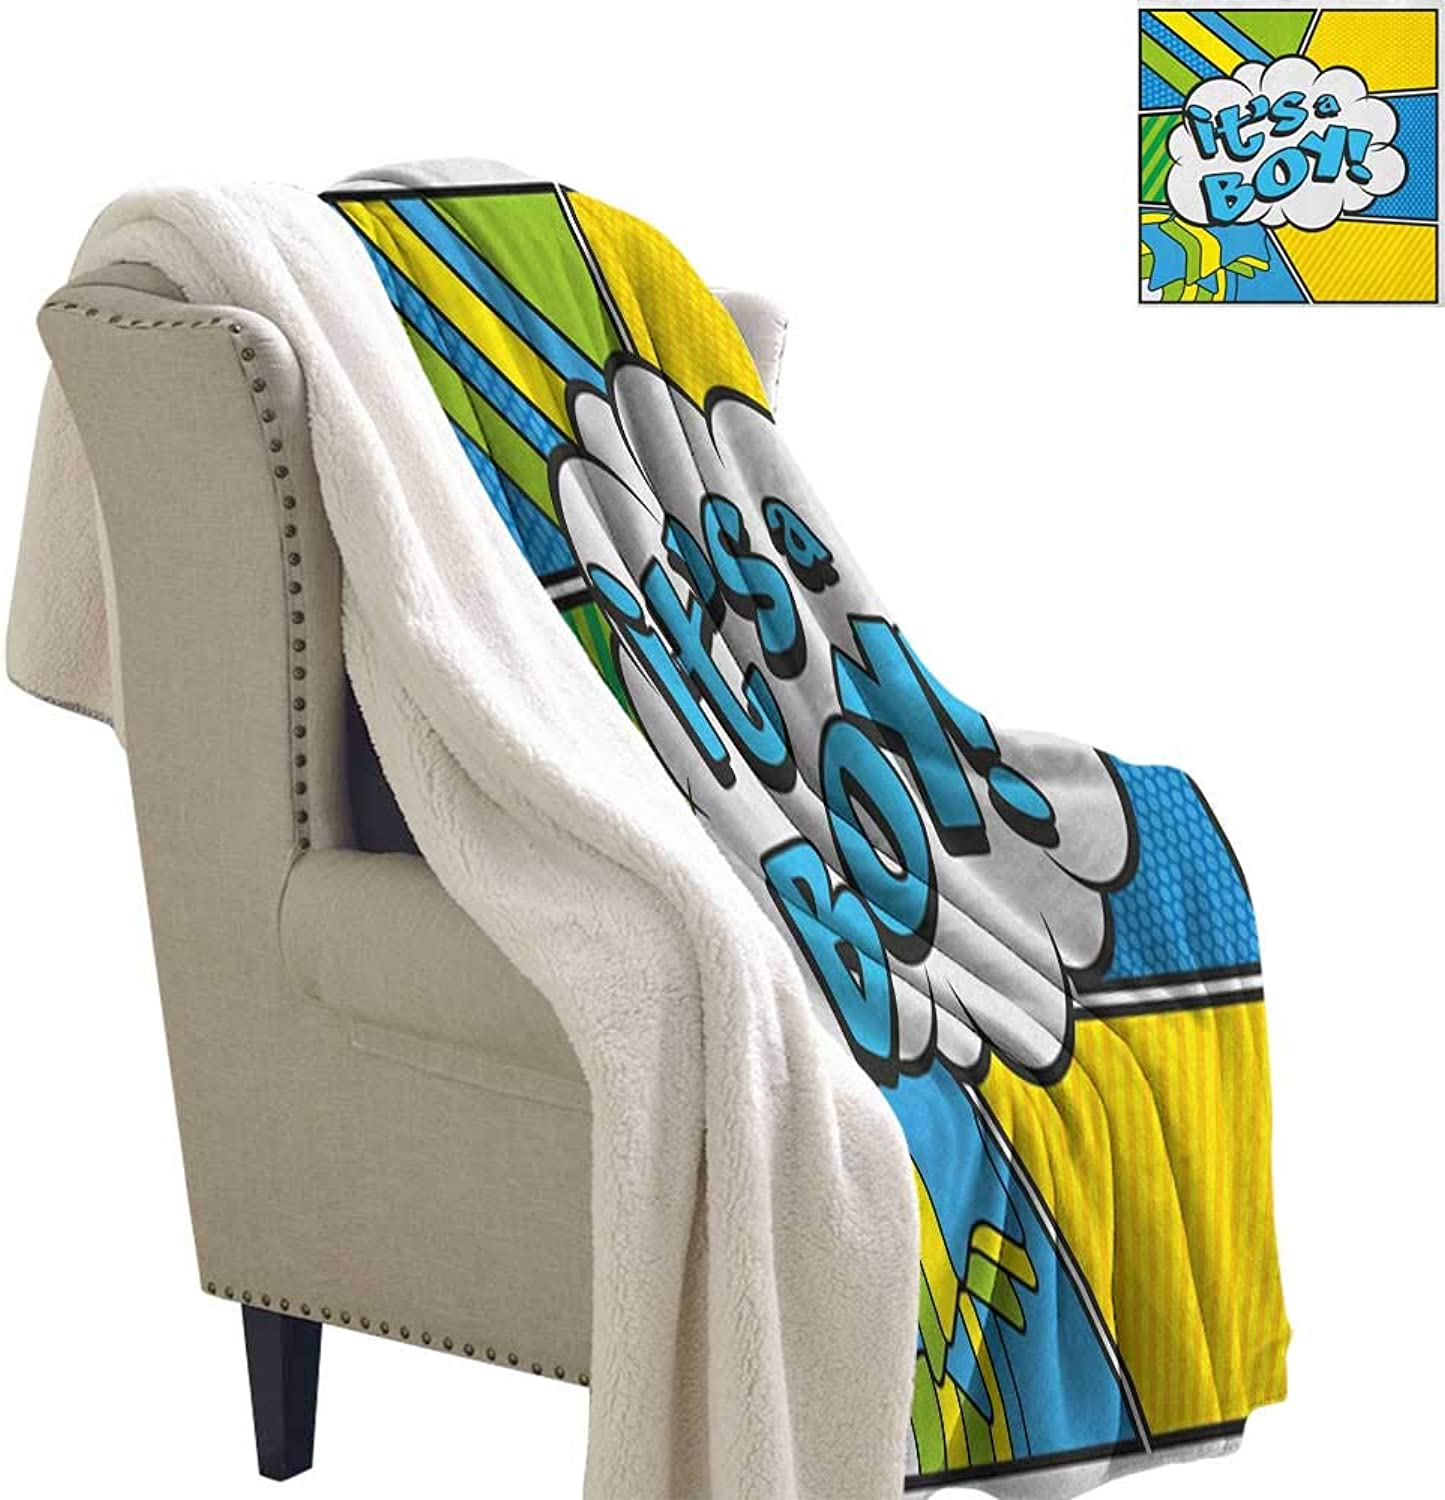 Suchashome Gender Reveal Heavy Sherpa Blanket Pop Art Style Comics Its A Boy Vintage Announcement Theme Flannel Bed Blankets 60x32 Inch Sky bluee Yellow Fern Green